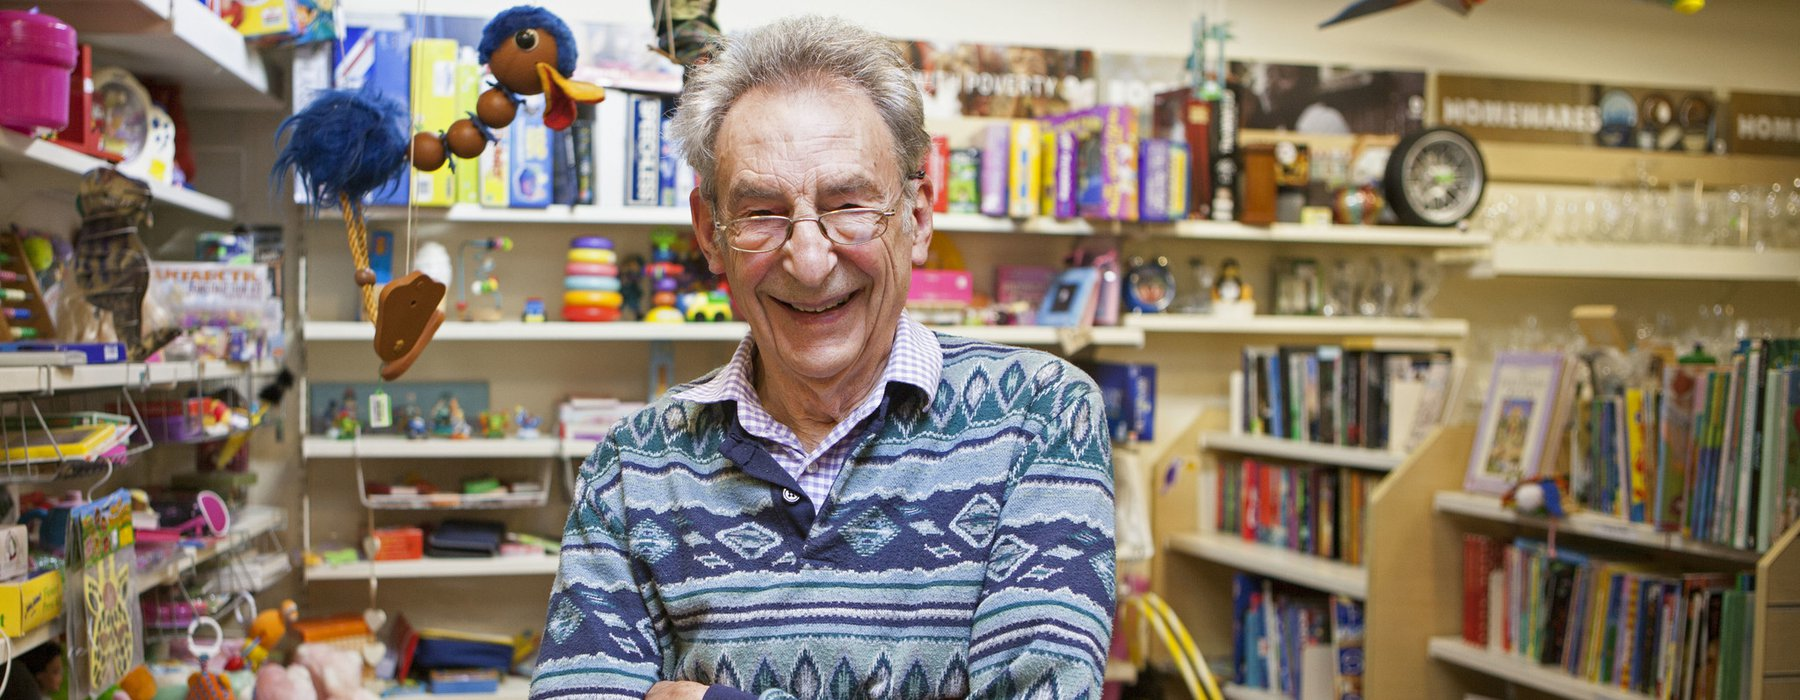 Oxfam volunteer Roger Baker, pictured in Oxfam's shop in Abingdon.